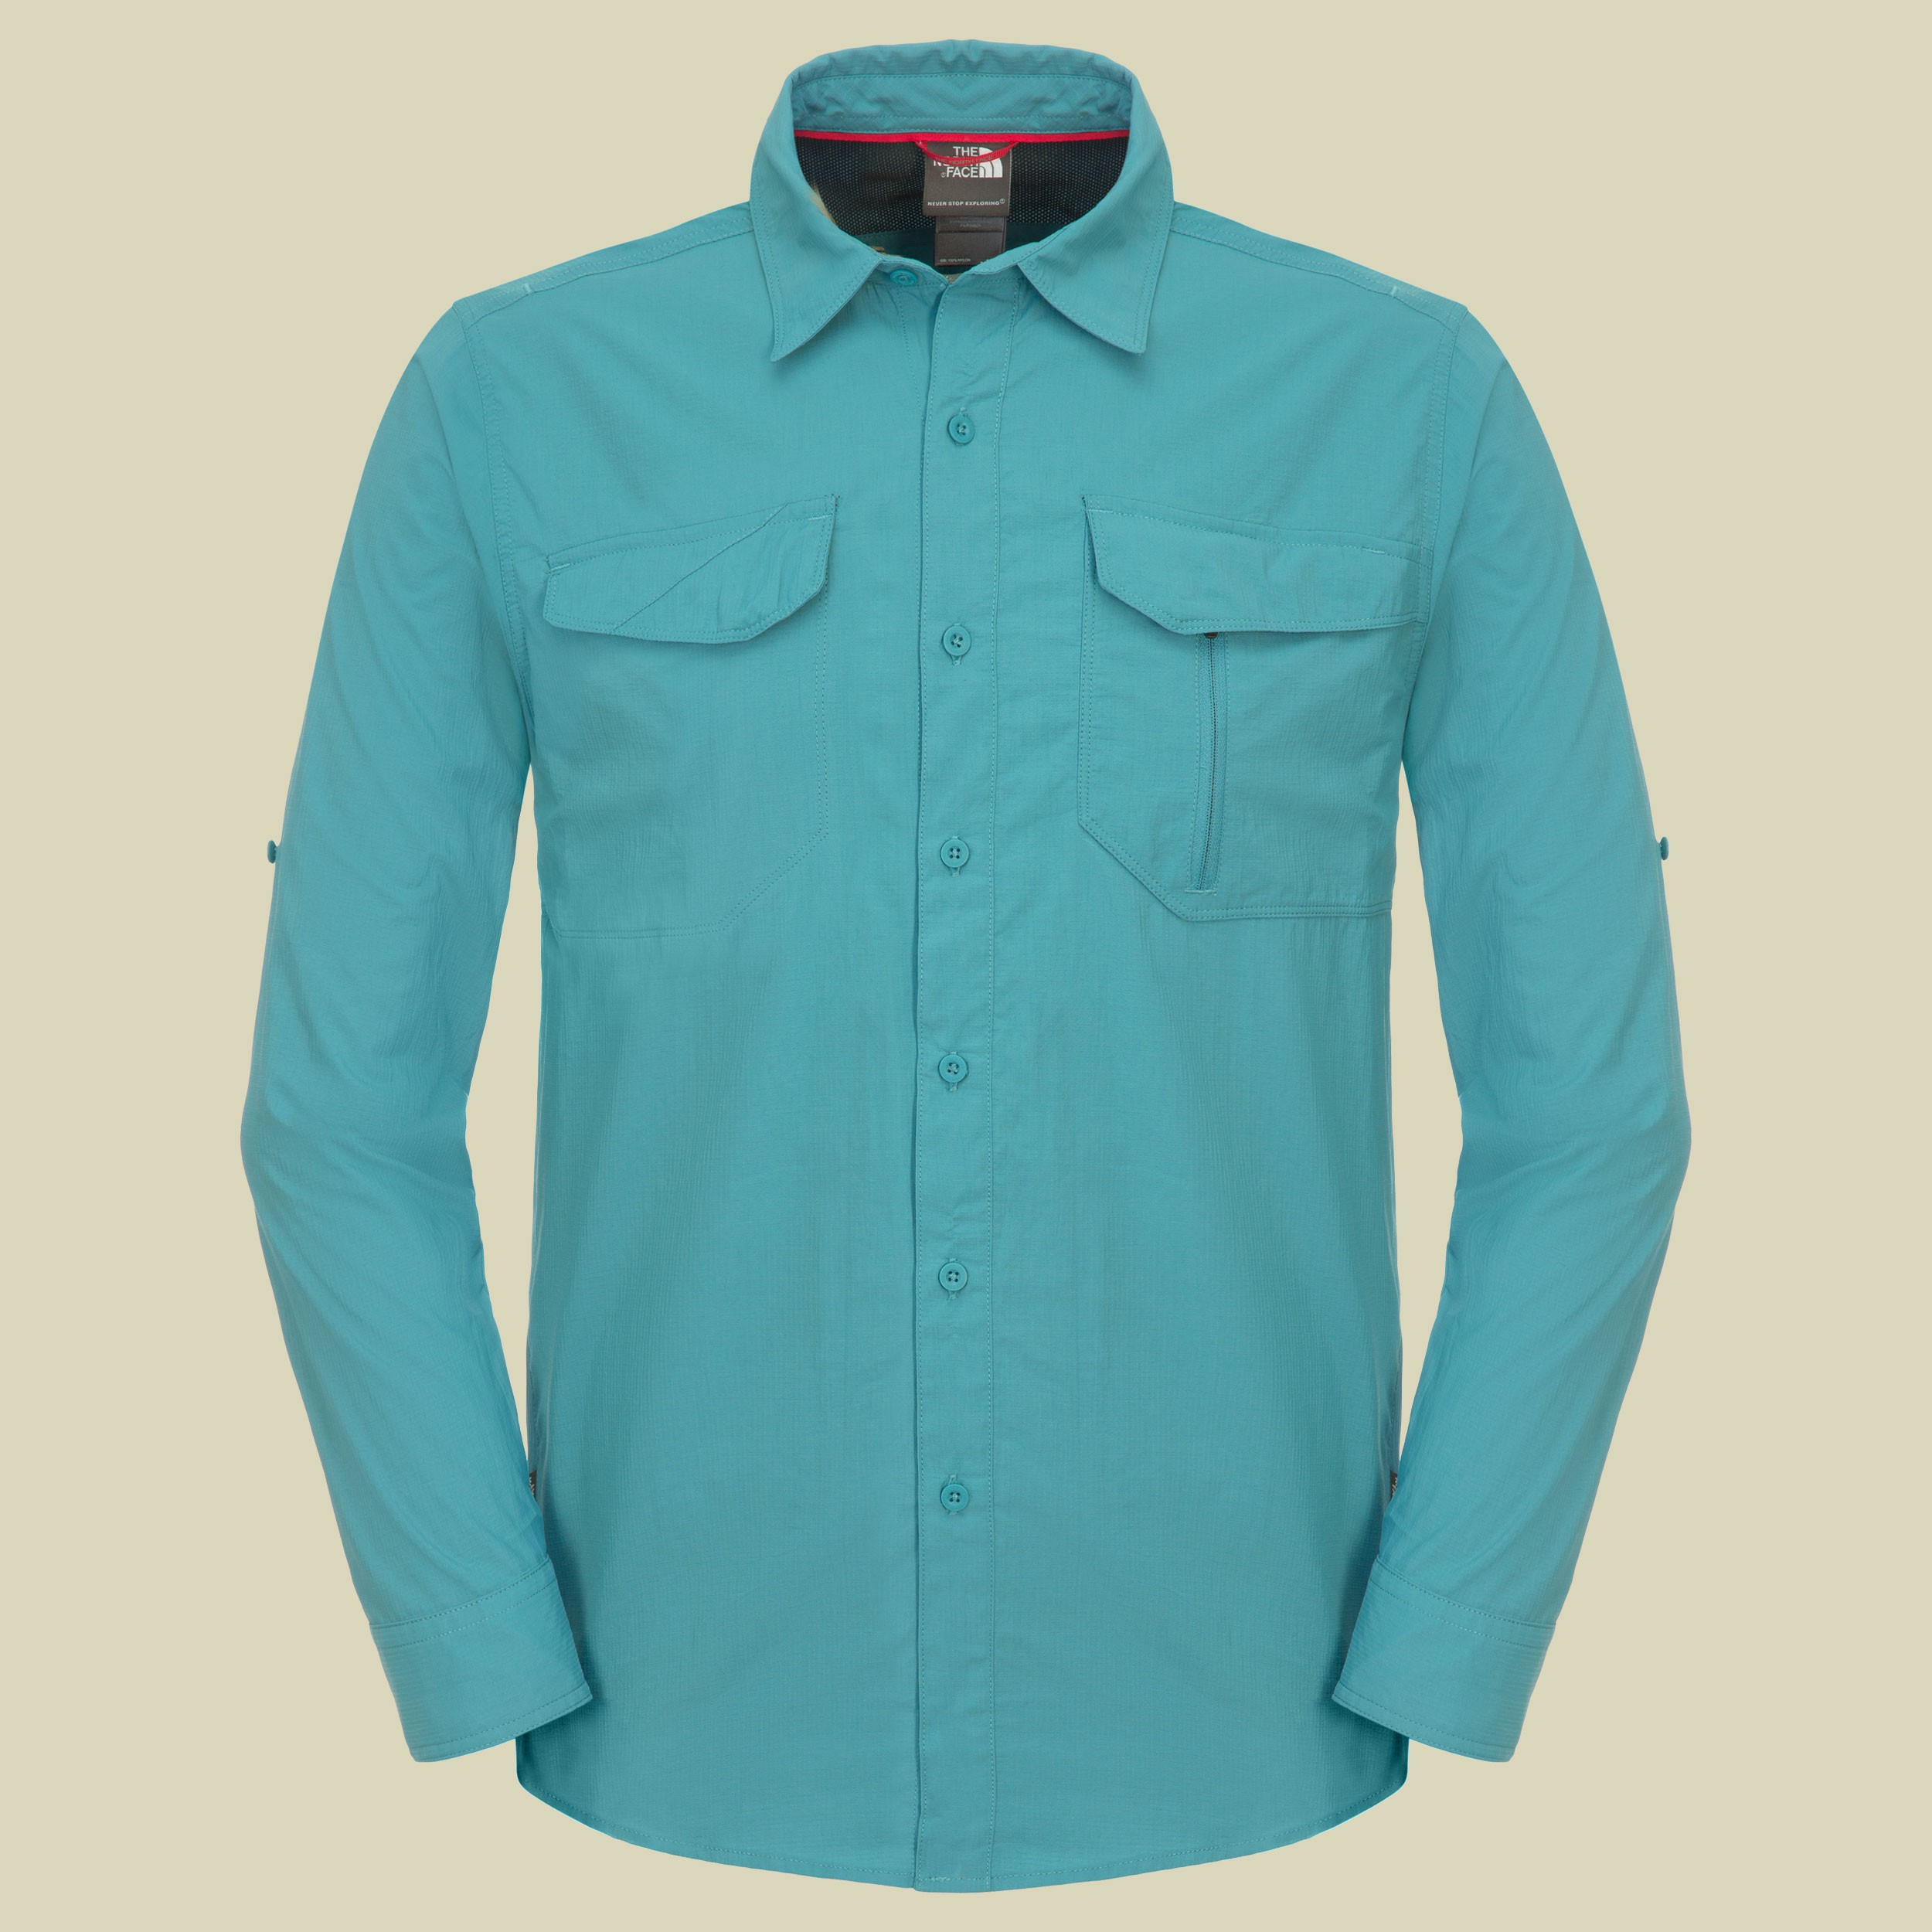 Long Sleeve New Sequoia Shirt Men